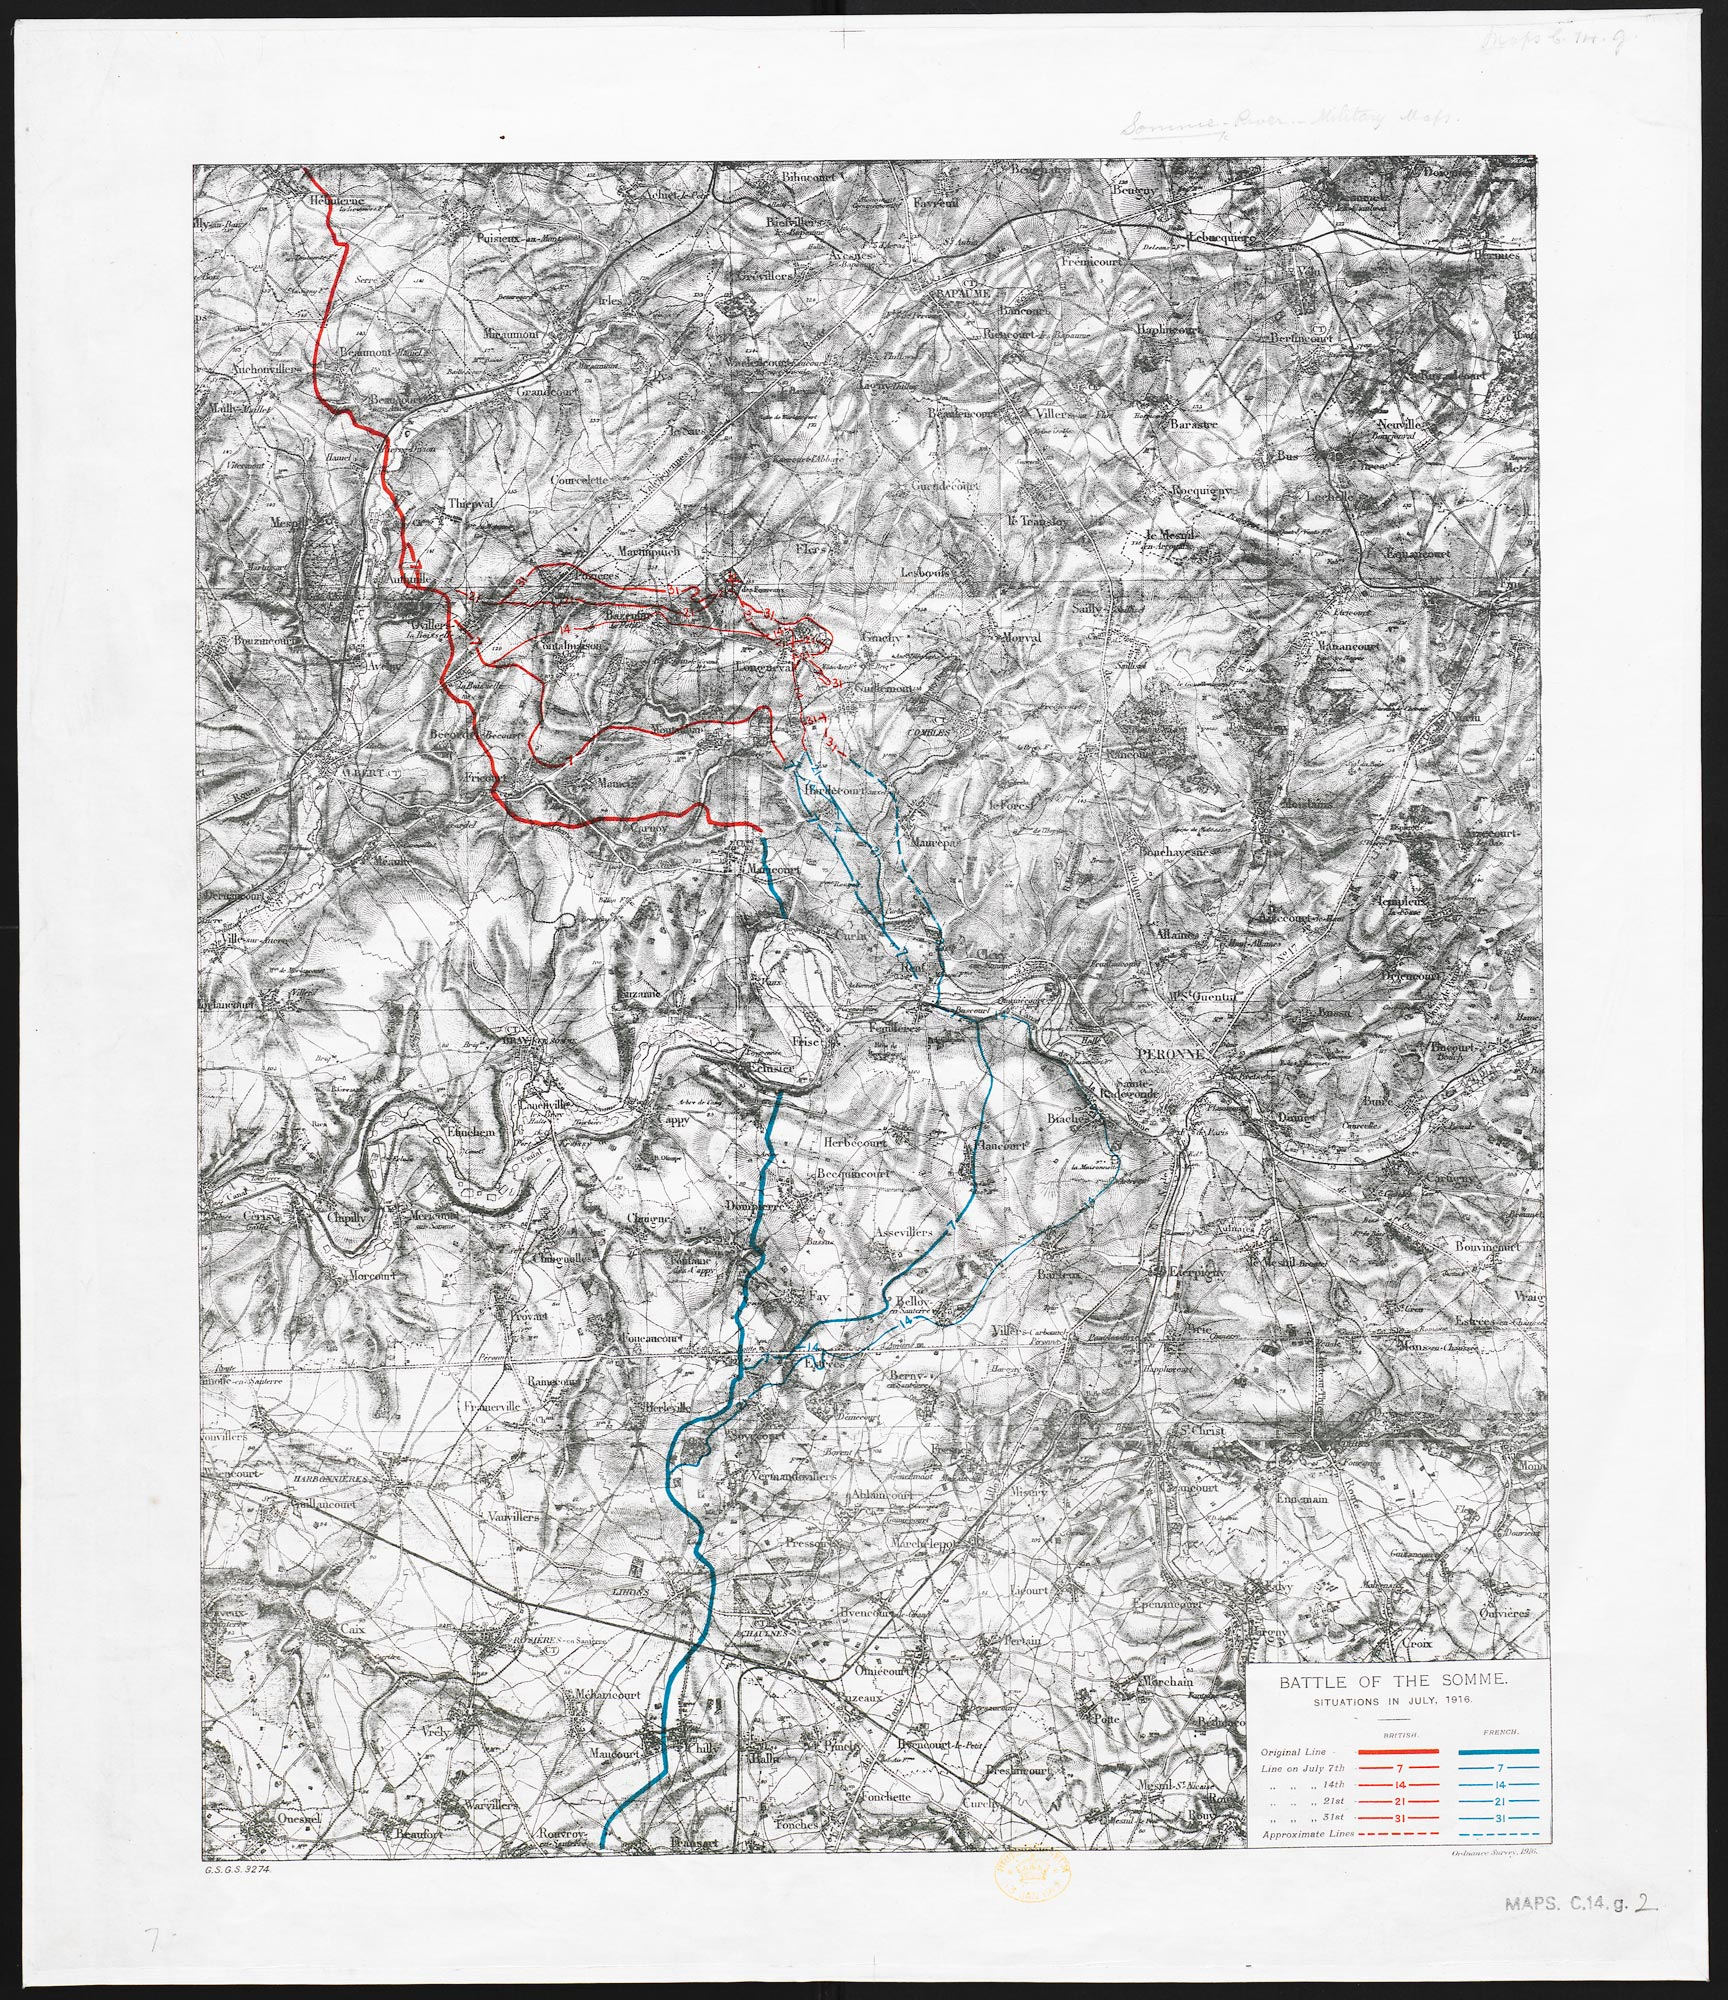 Battle of the Somme. Situation in July 1916. 1:80,000.